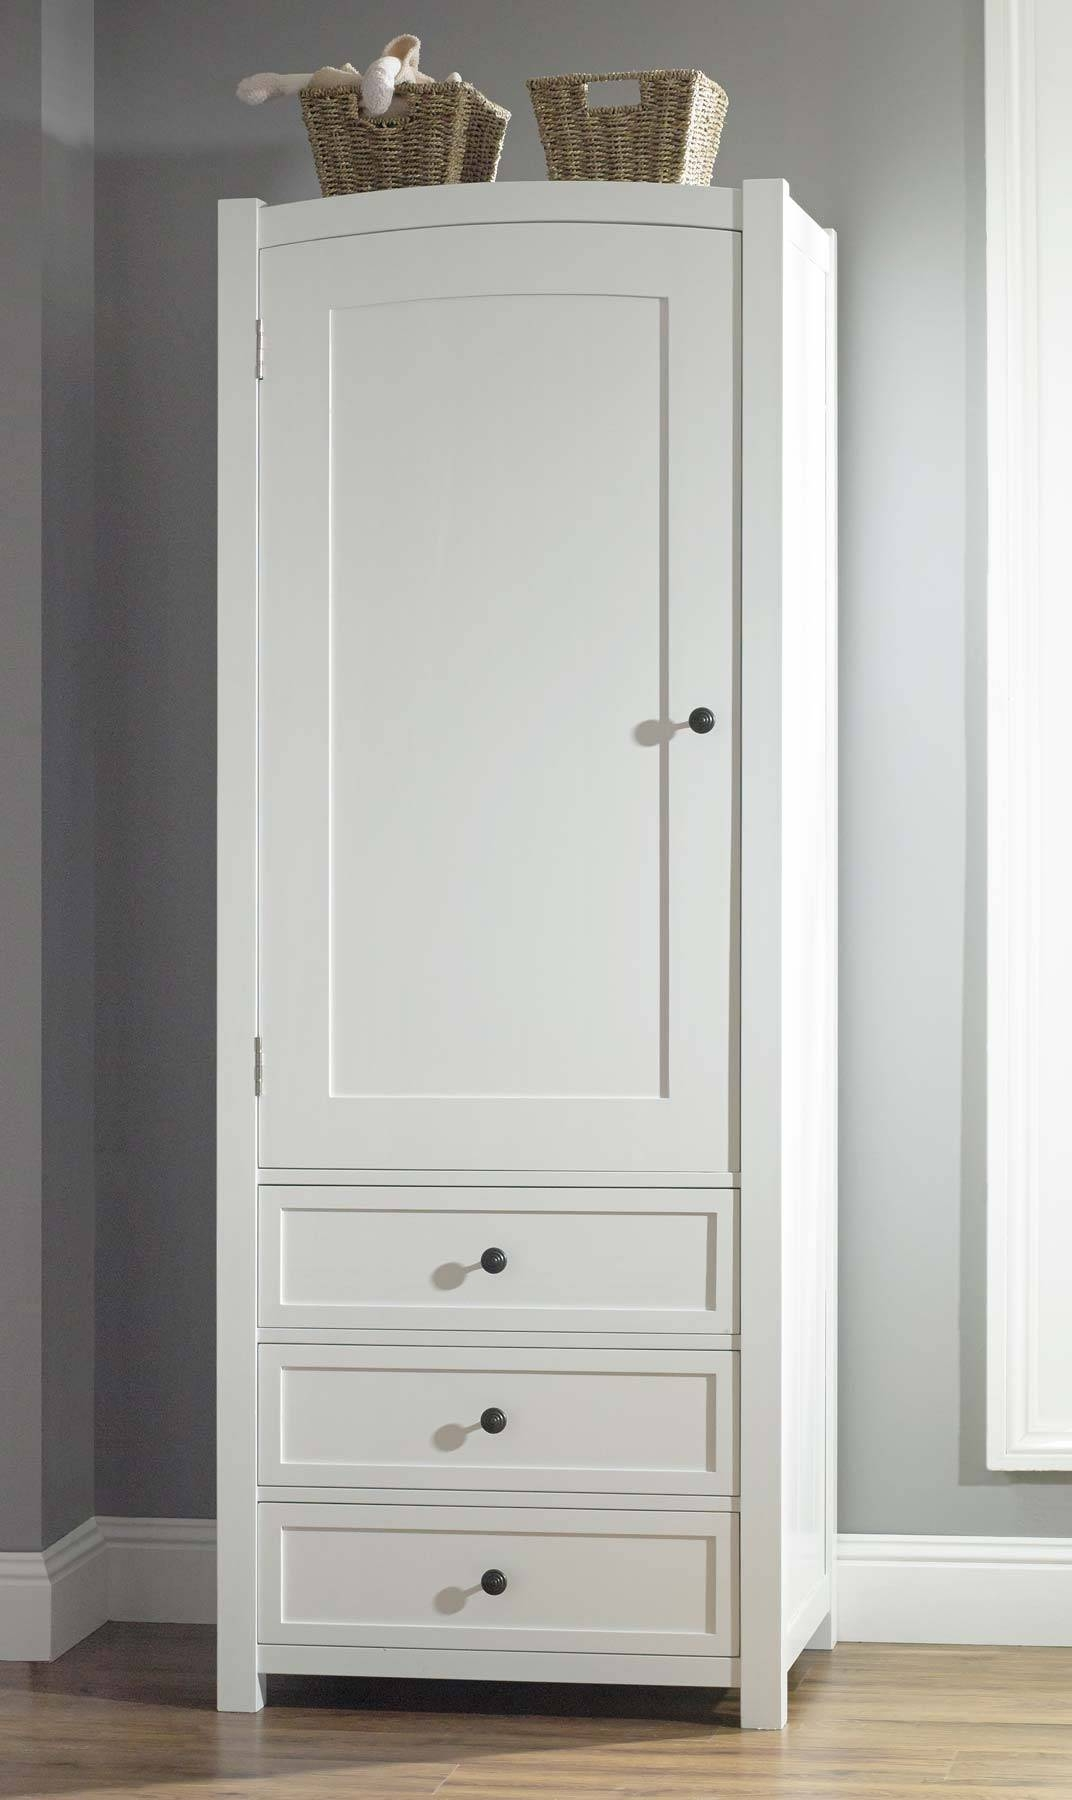 Wardrobe : 39 Formidable White Wooden Wardrobe With Drawers Photo with regard to White Wooden Wardrobes (Image 10 of 15)